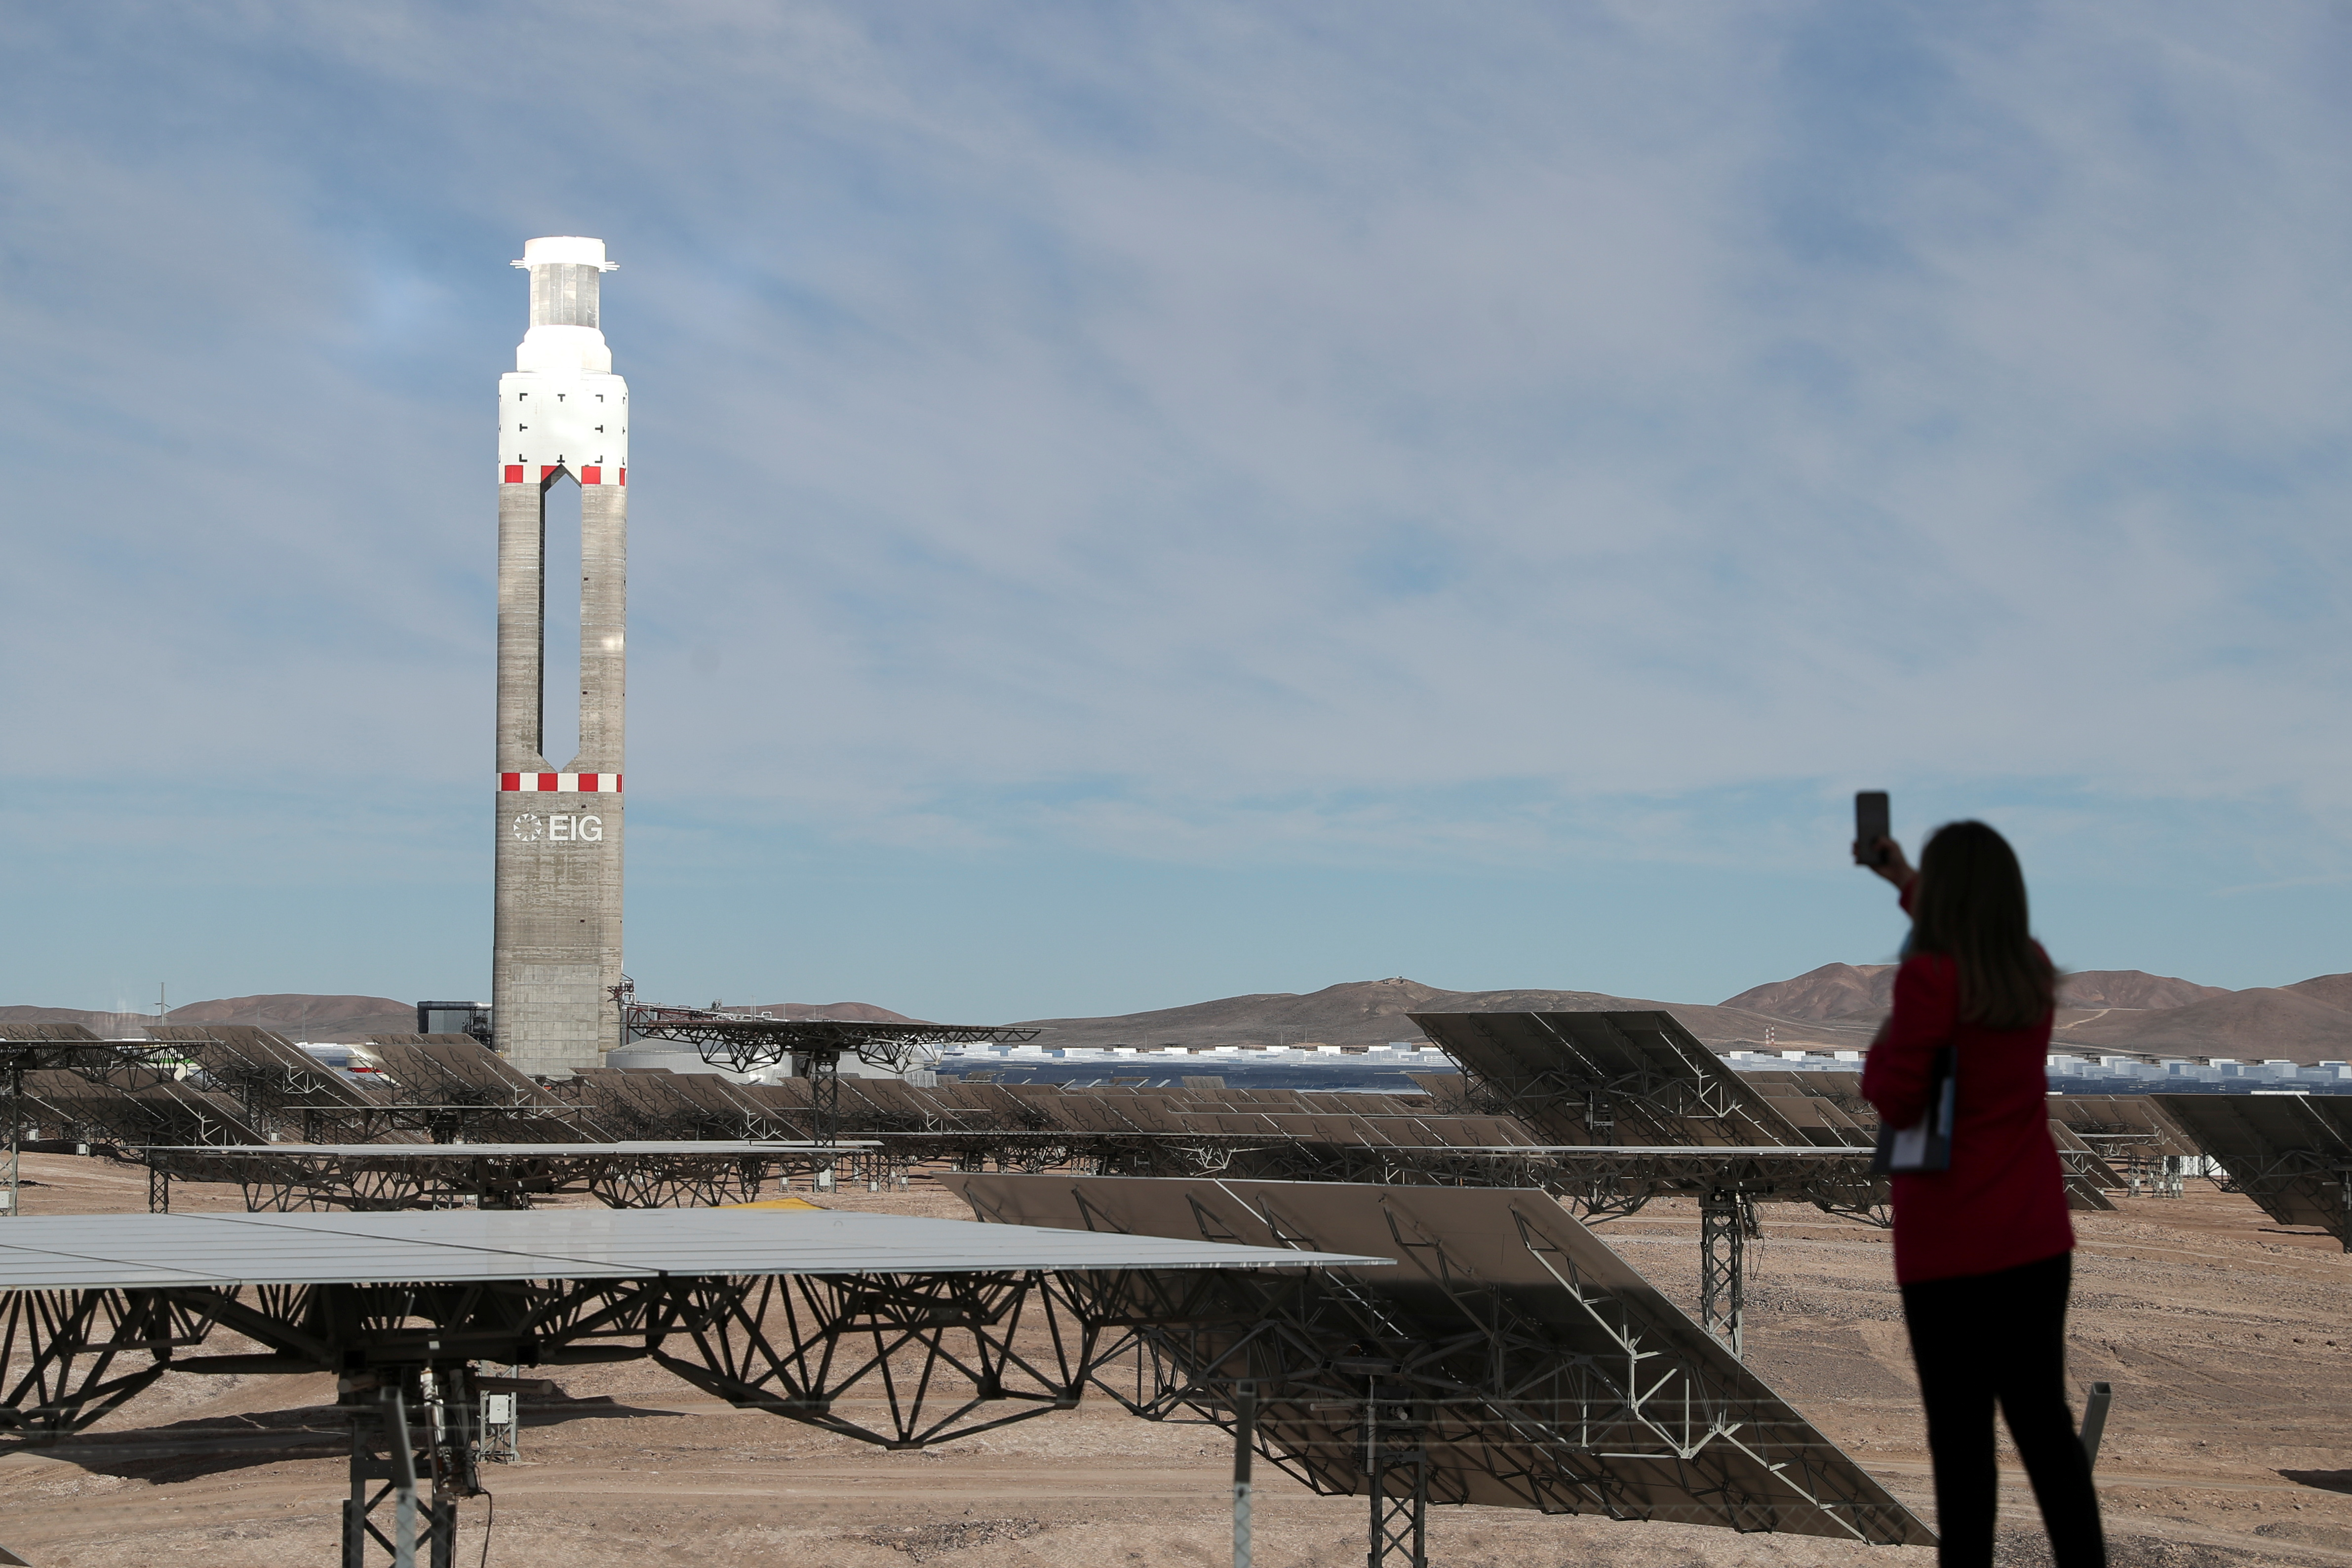 A person takes pictures during the inauguration of the Cerro Dominador thermal solar power plant, in Maria Elena, Chile June 8, 2021. REUTERS/Ivan Alvarado